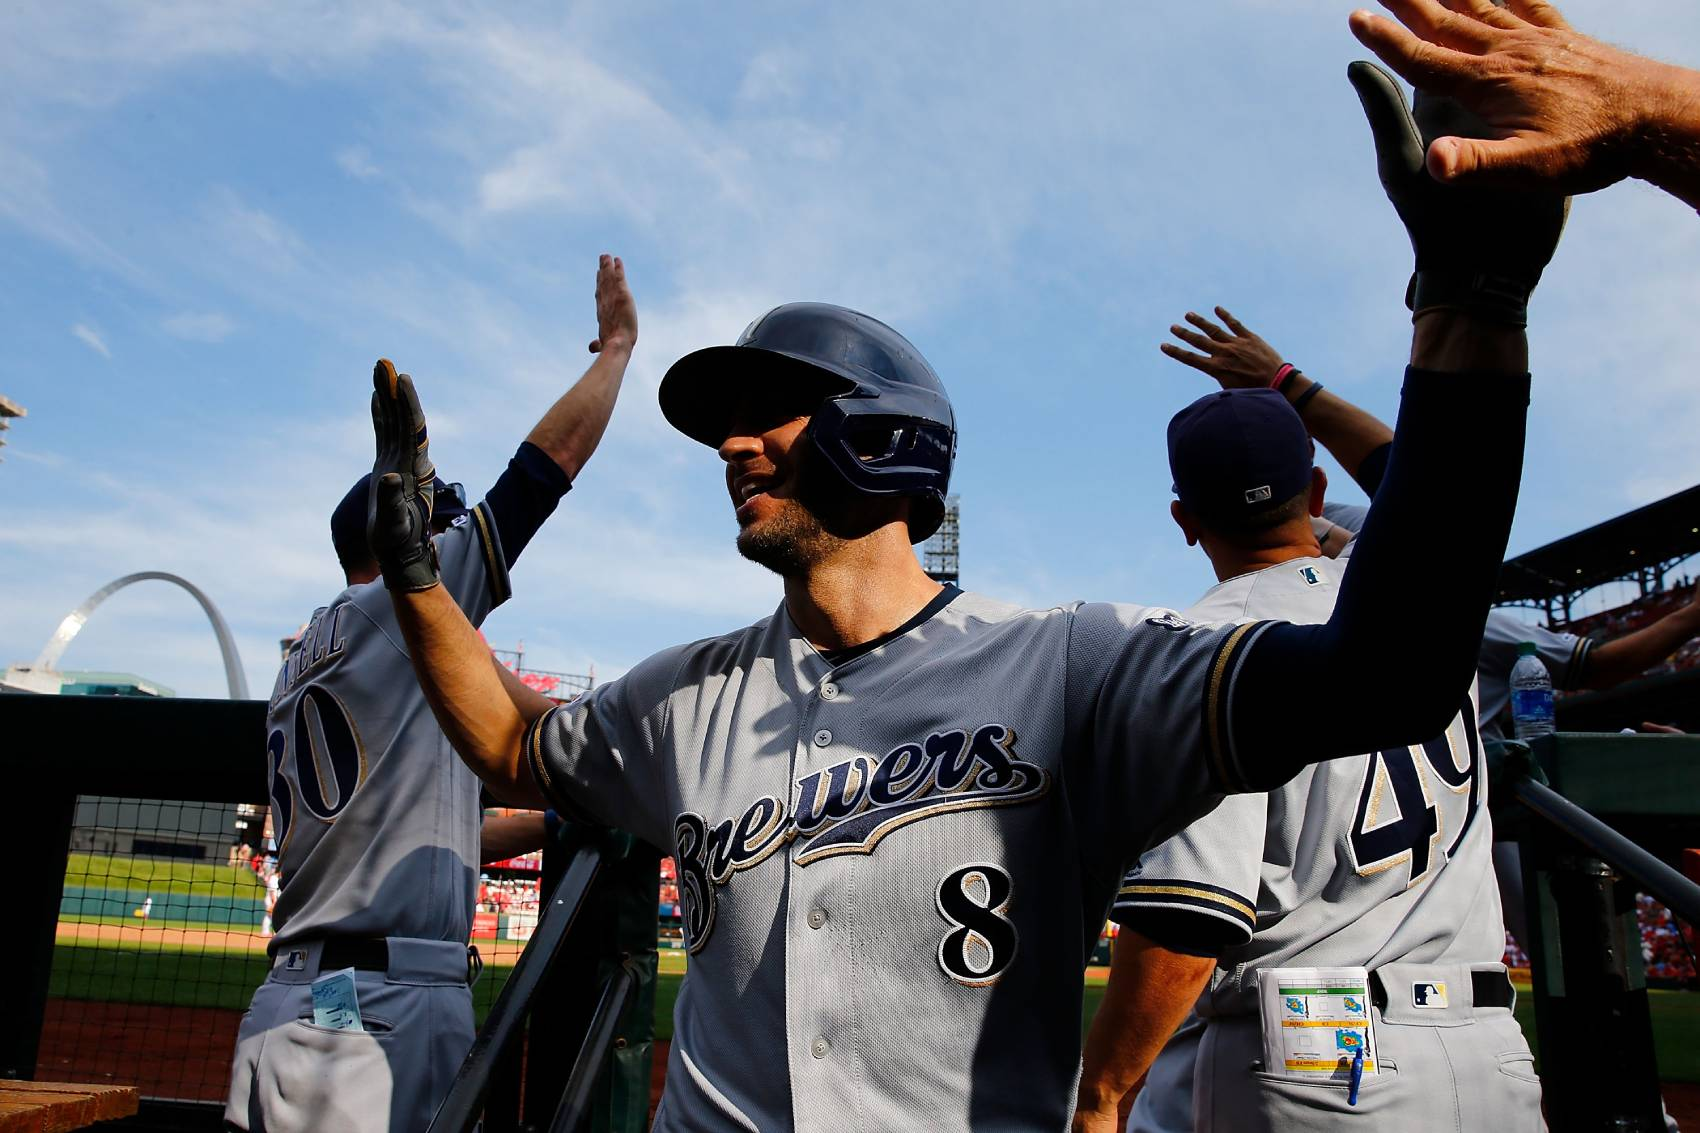 Milwaukee Brewers veteran Ryan Braun is closing in on 350 home runs in the majors.